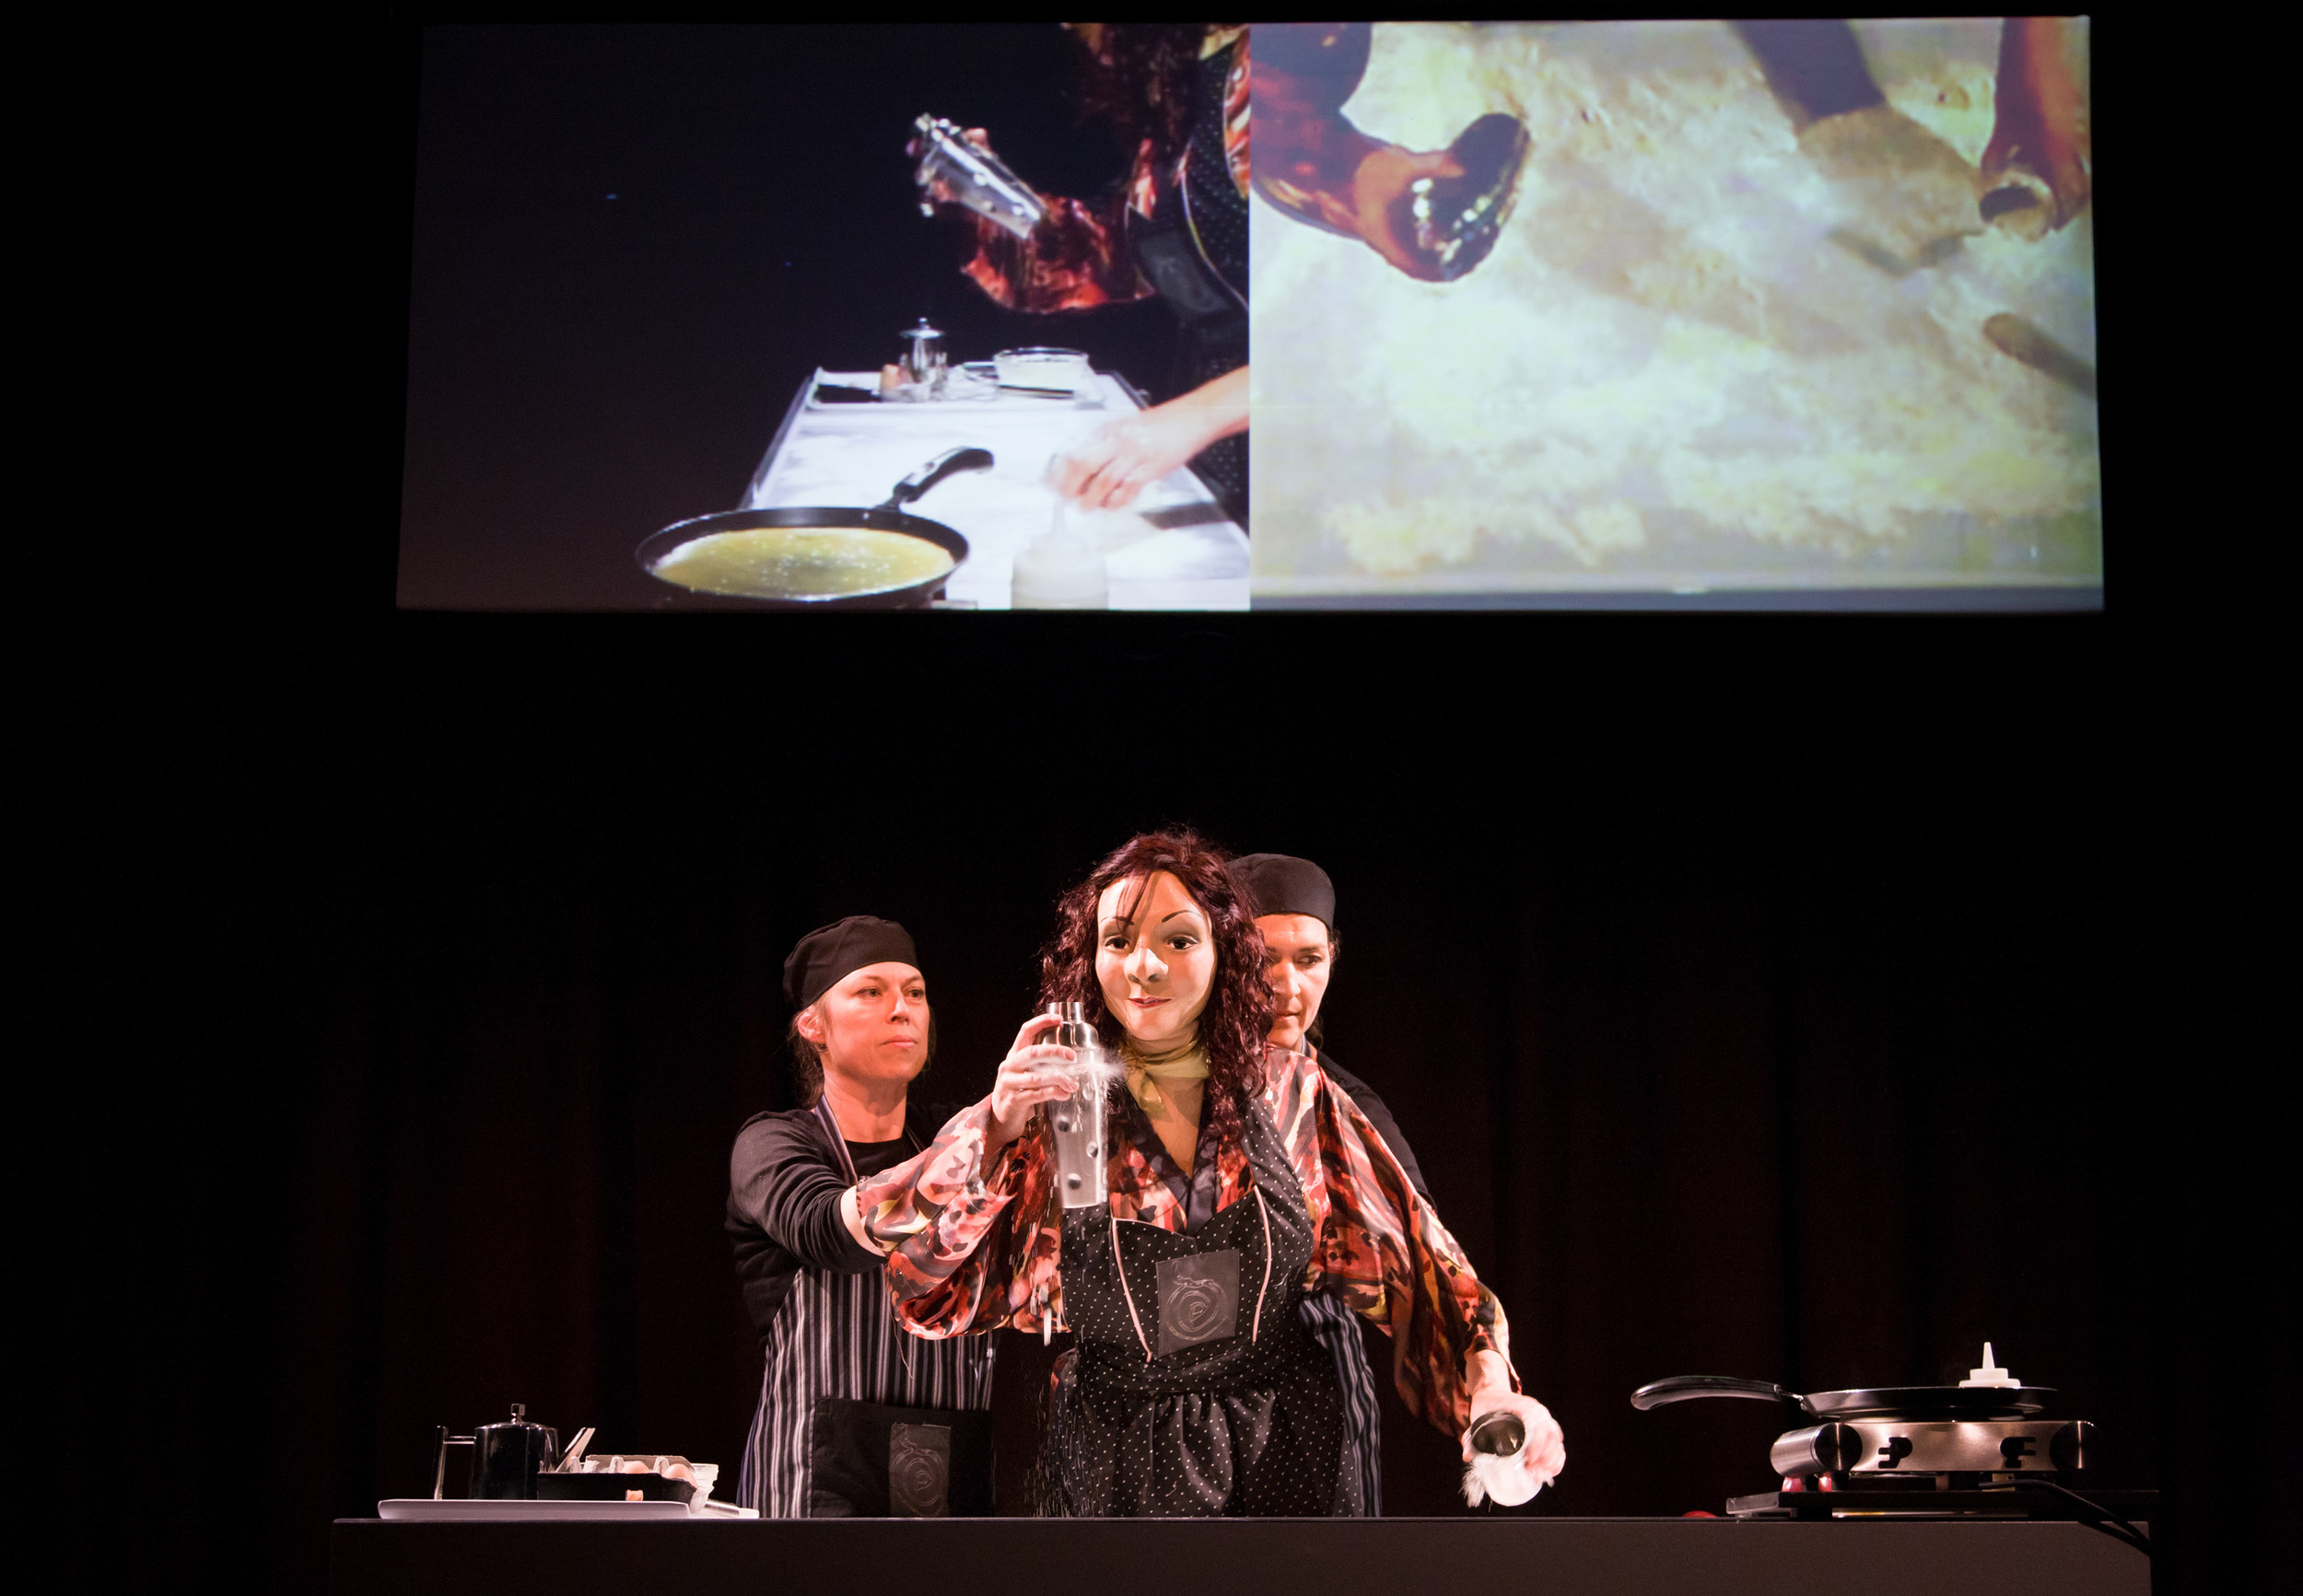 'Hungry for You', Extended Play Projects, Peacock Theatre, Hobart 2012